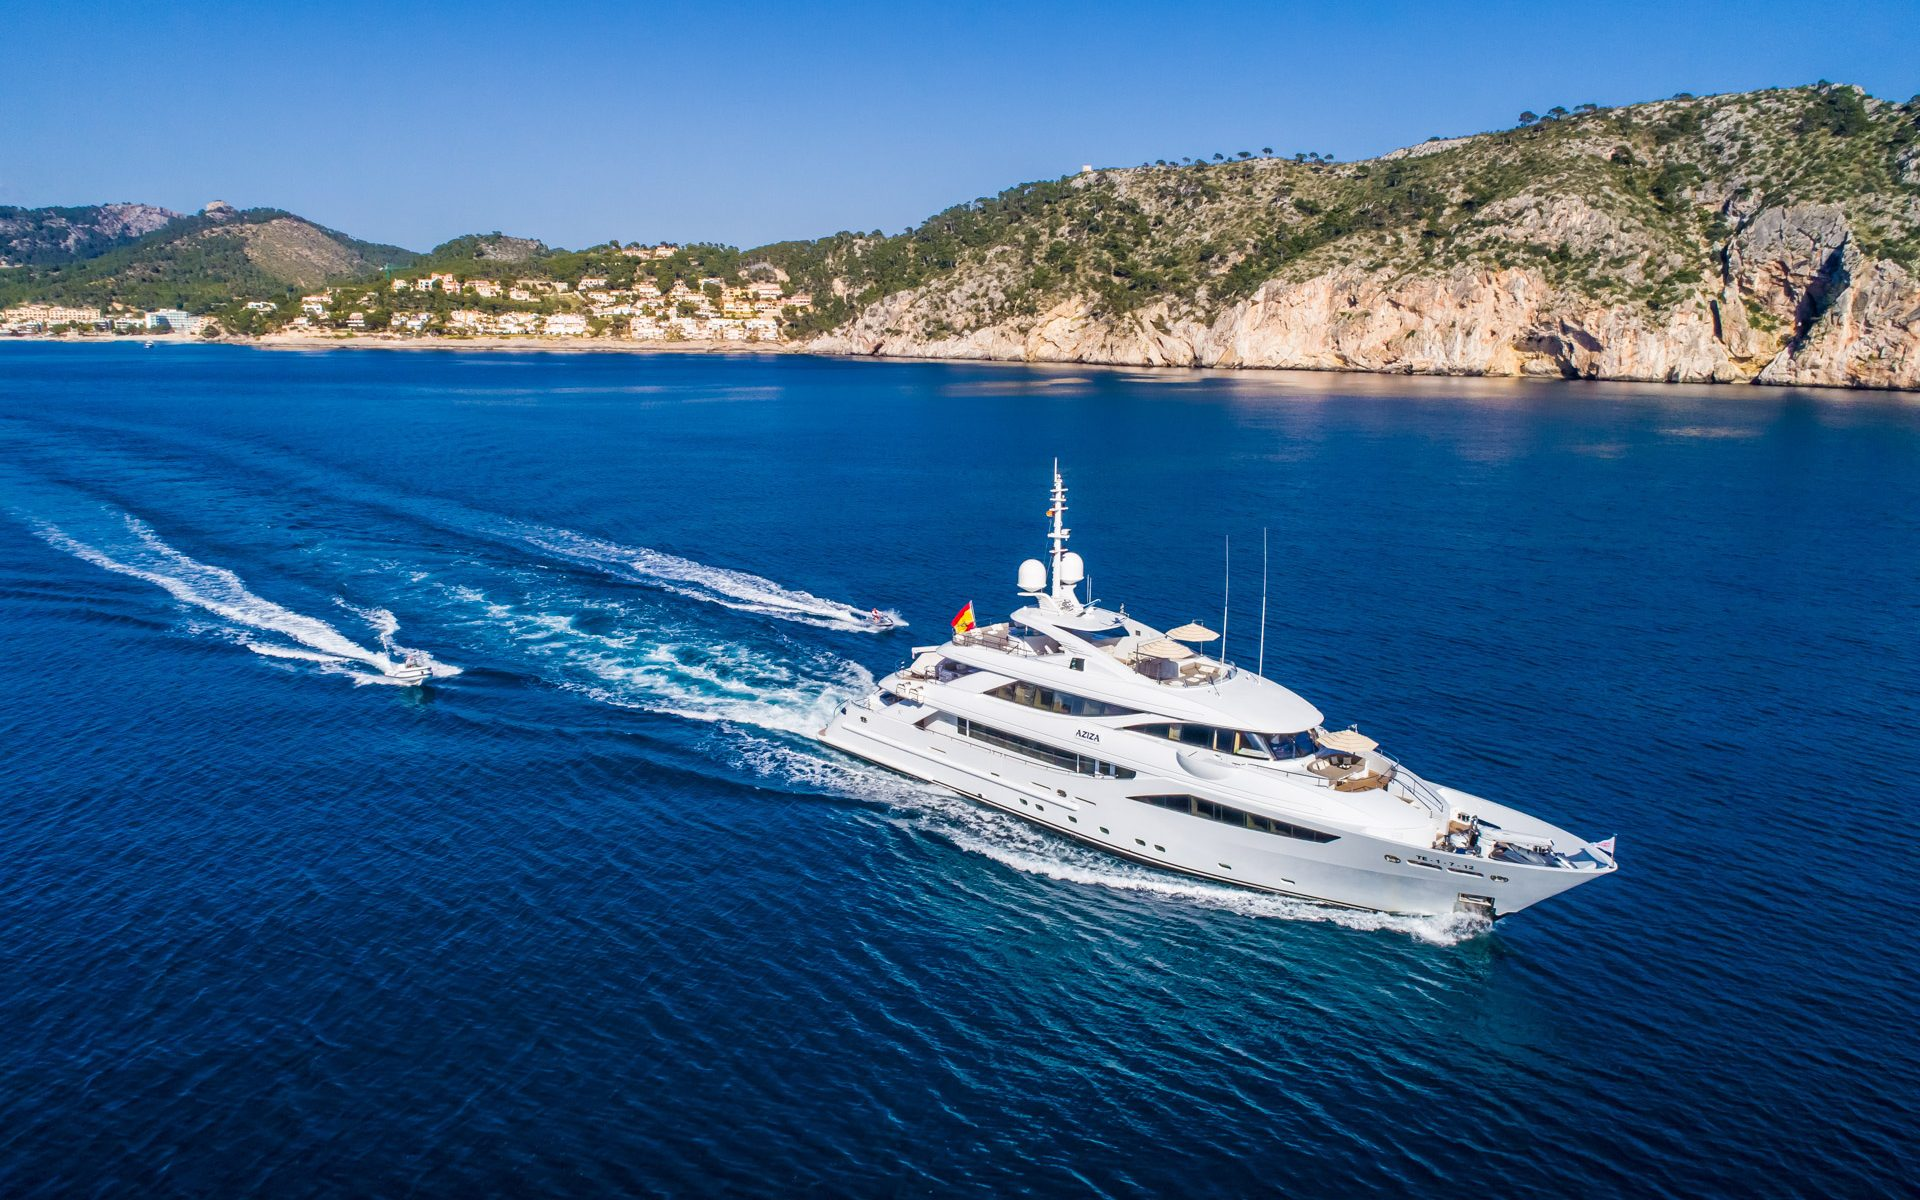 M/Y Aziza Superyacht Aerial with Tender Mallorca Photography Yacht Photographer Multicopter Yacht Photography Mallorca Ibiza Spain Drone